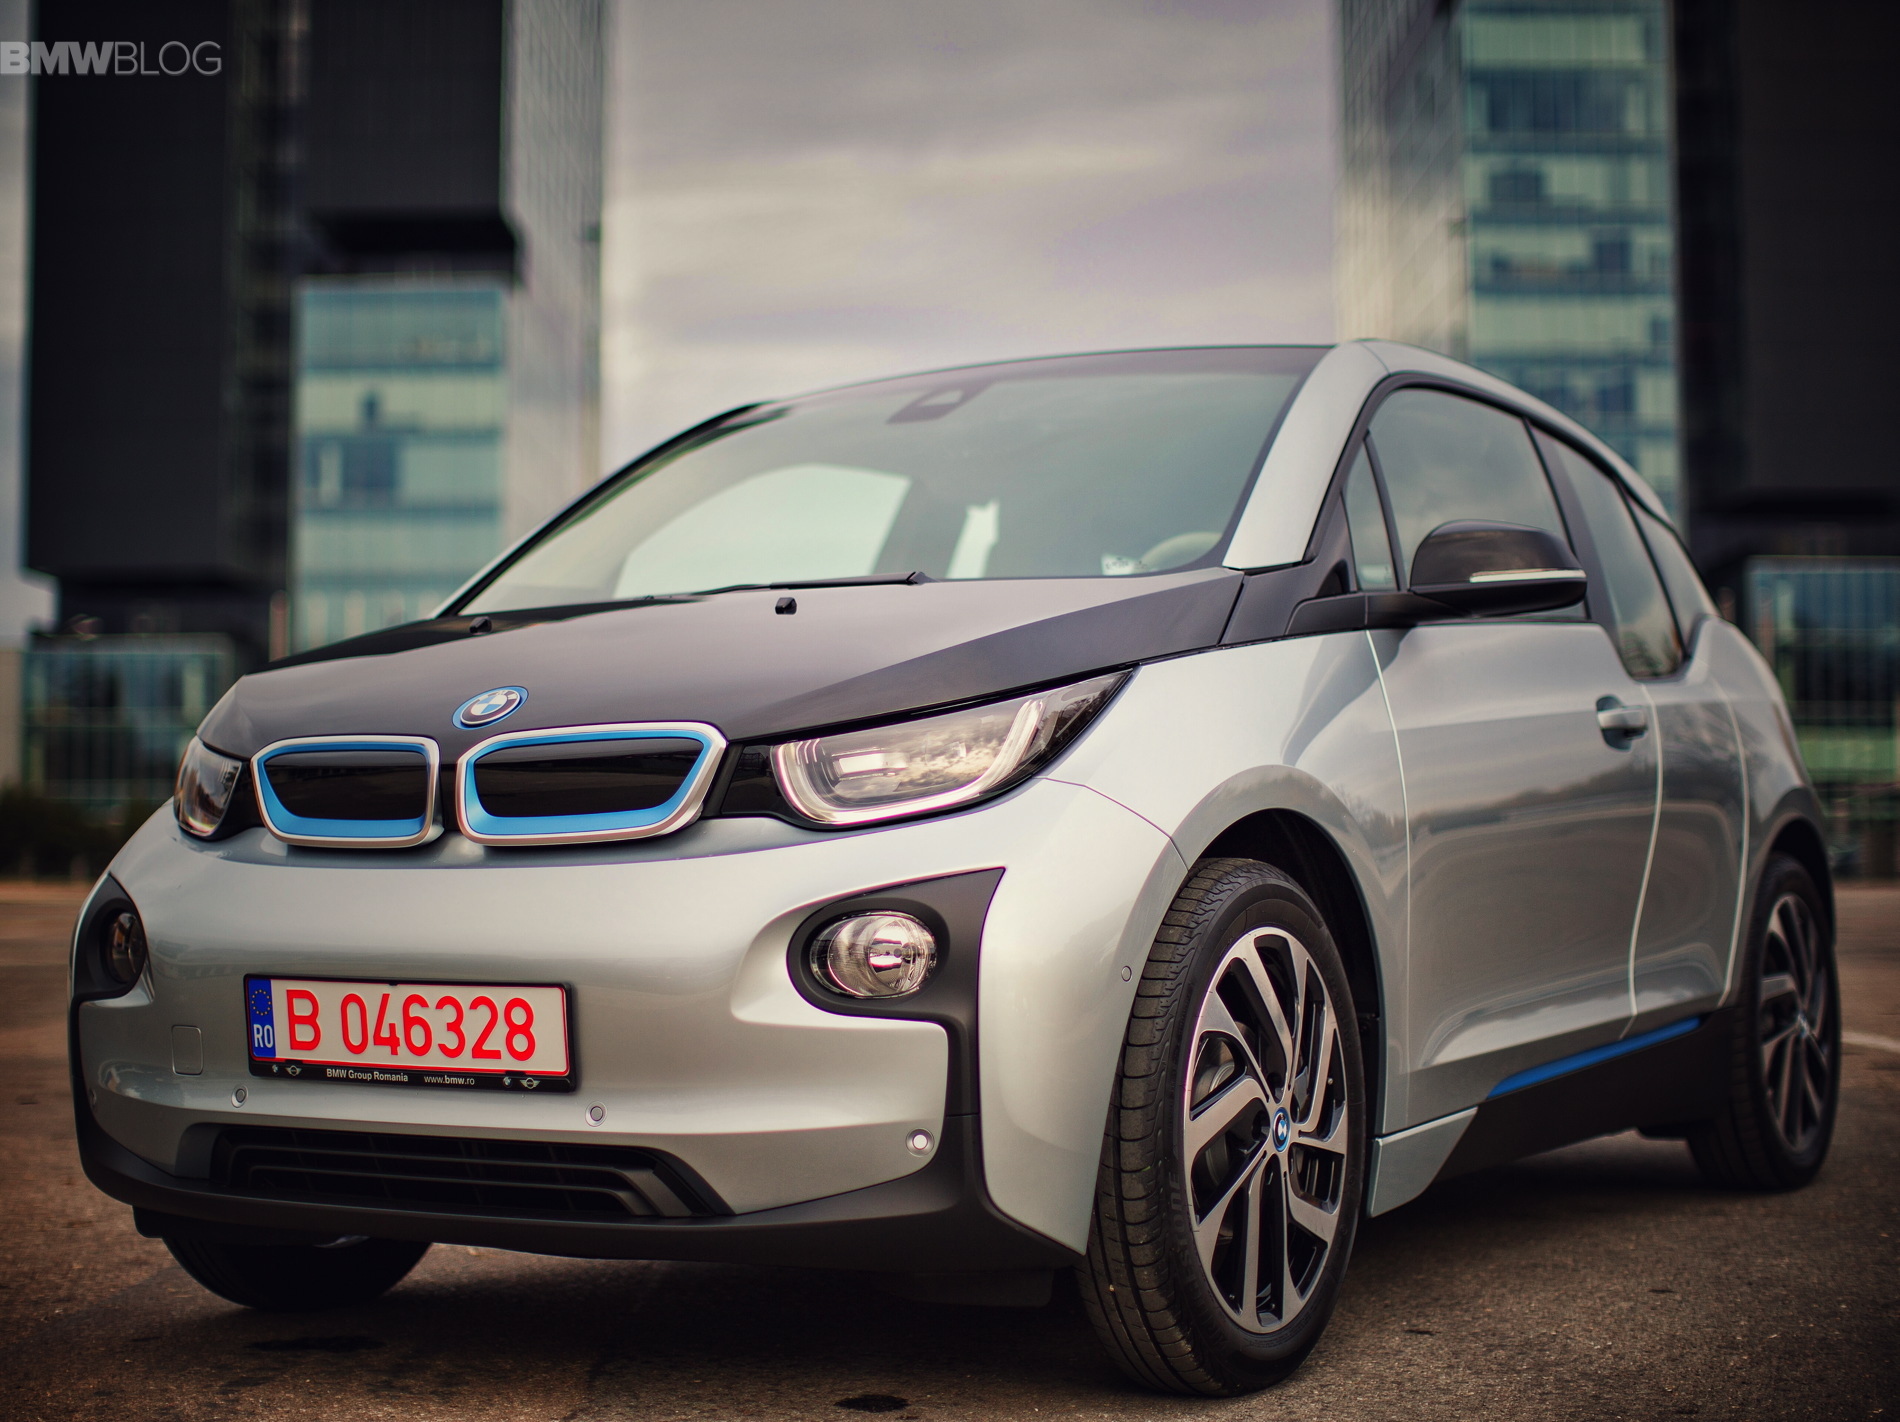 BMW i3 i8 photoshoot bucharest images 5